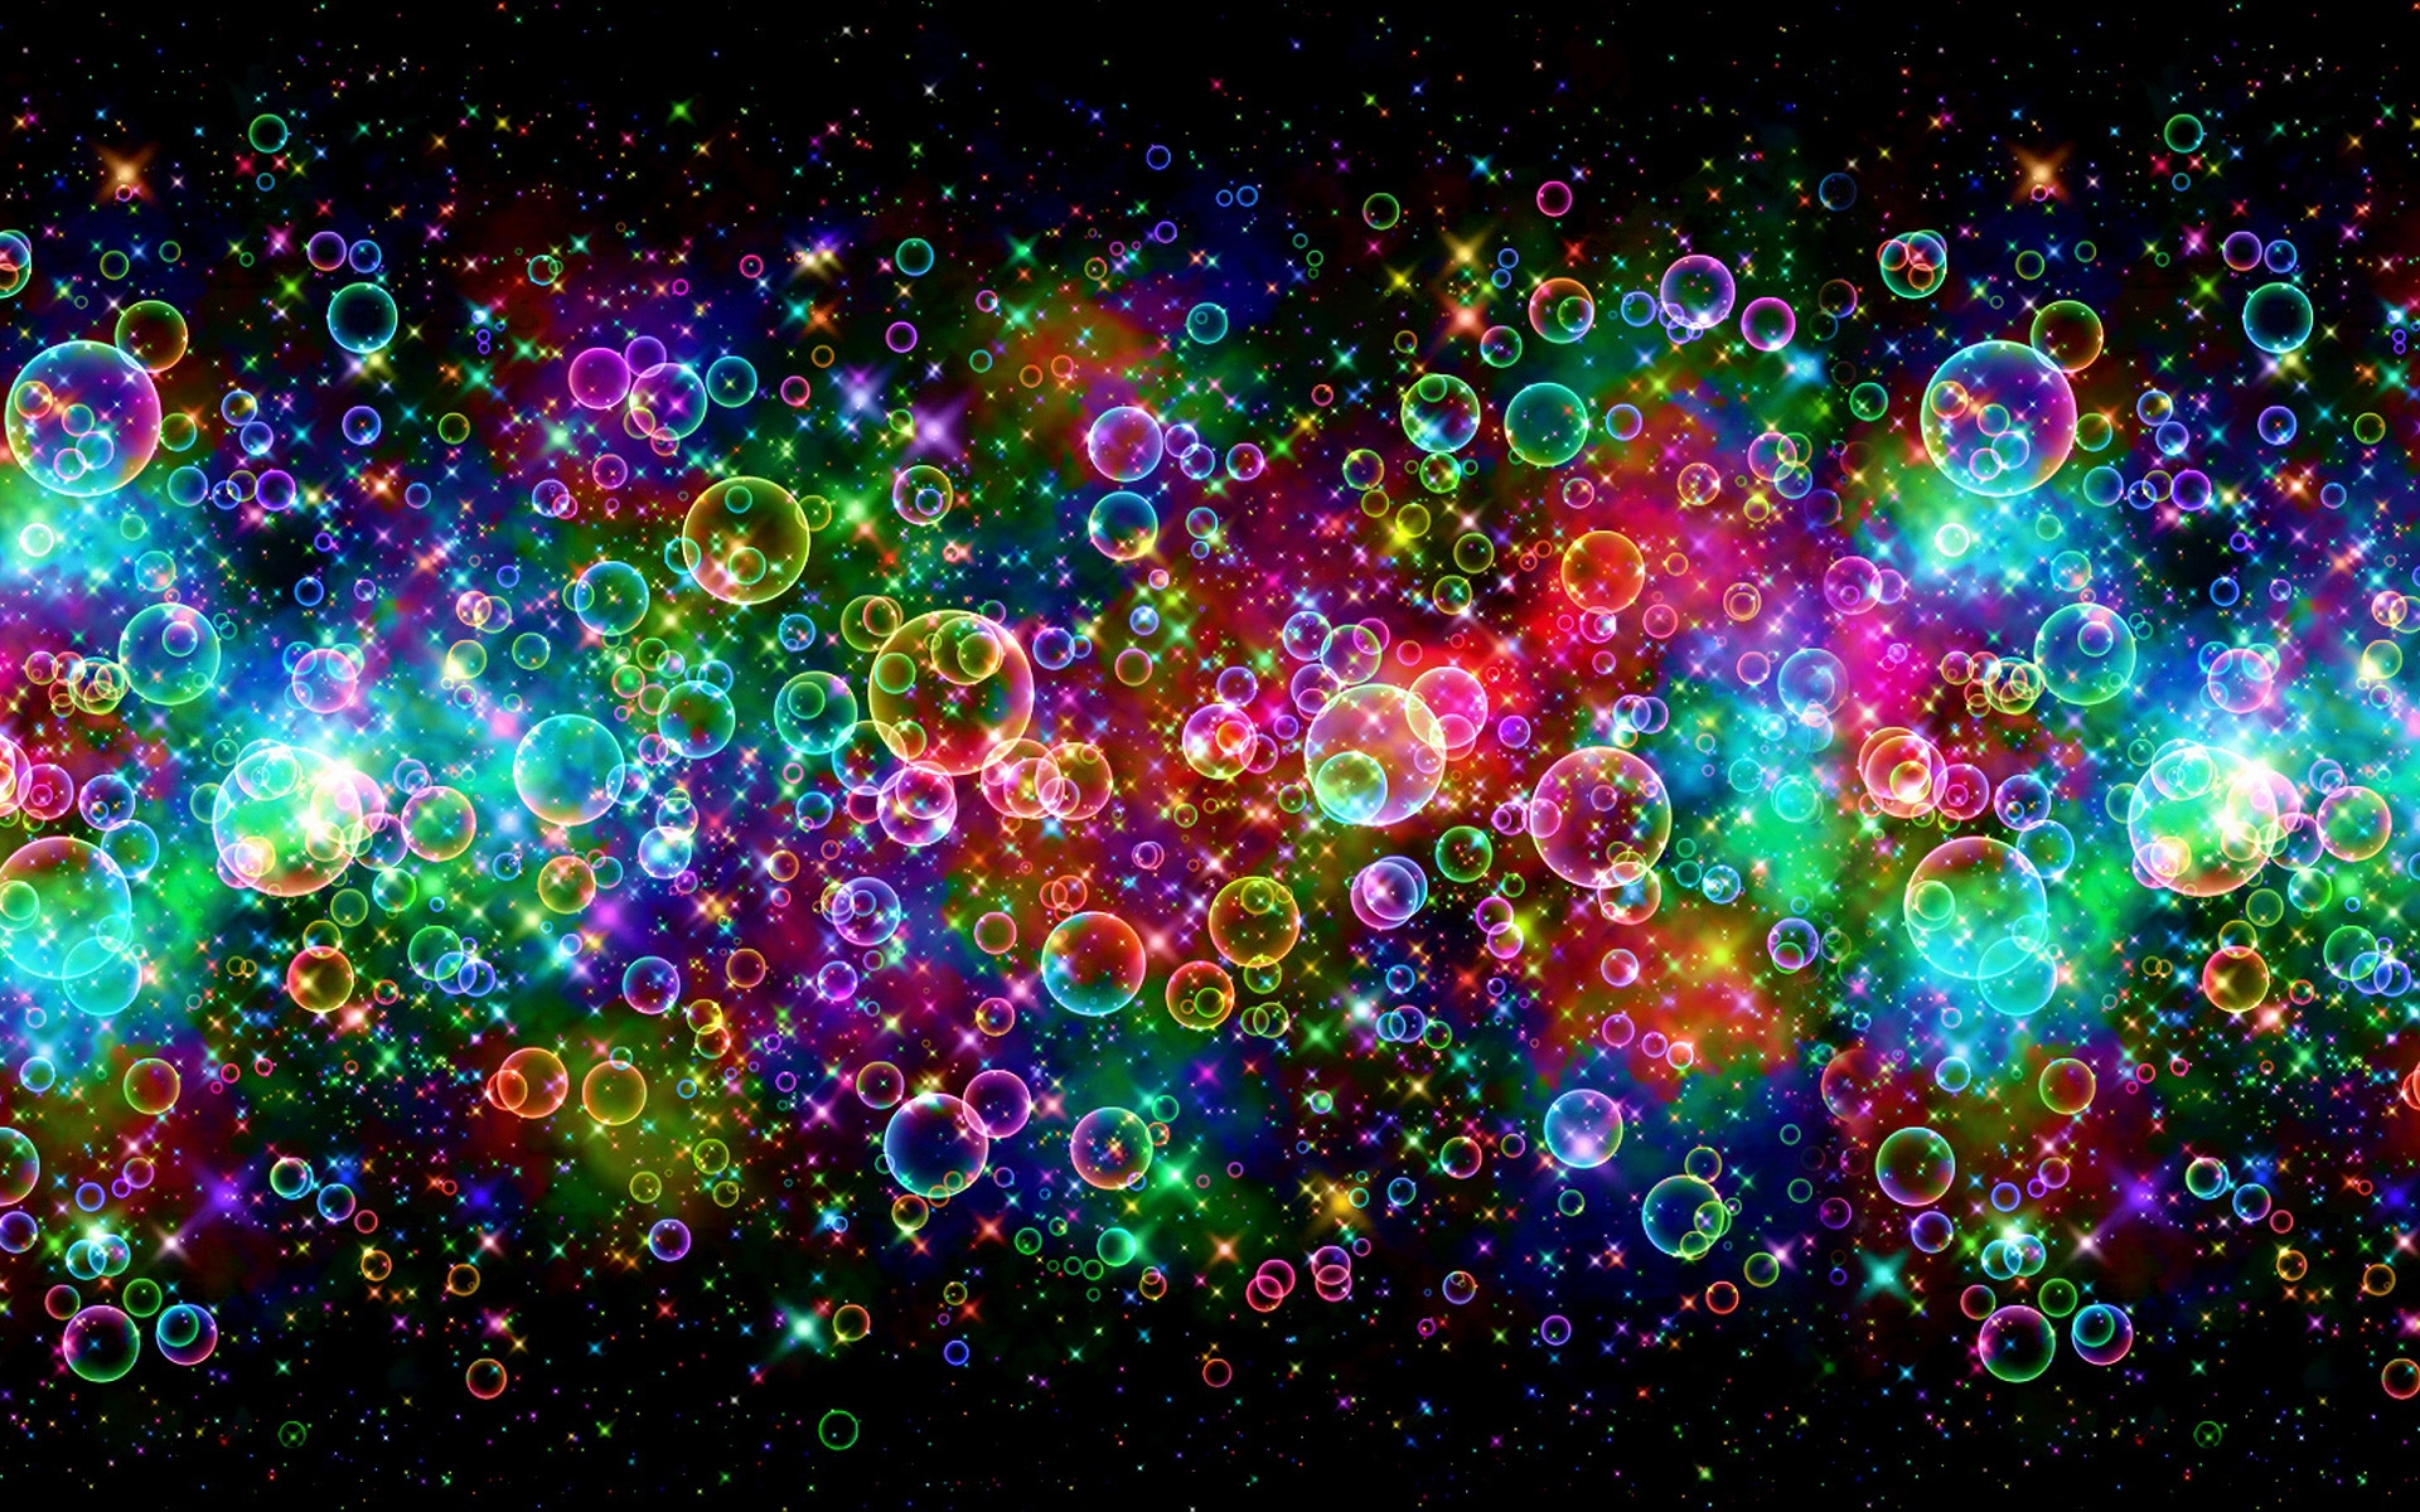 4k Bubbles Wallpapers High Quality Download Free